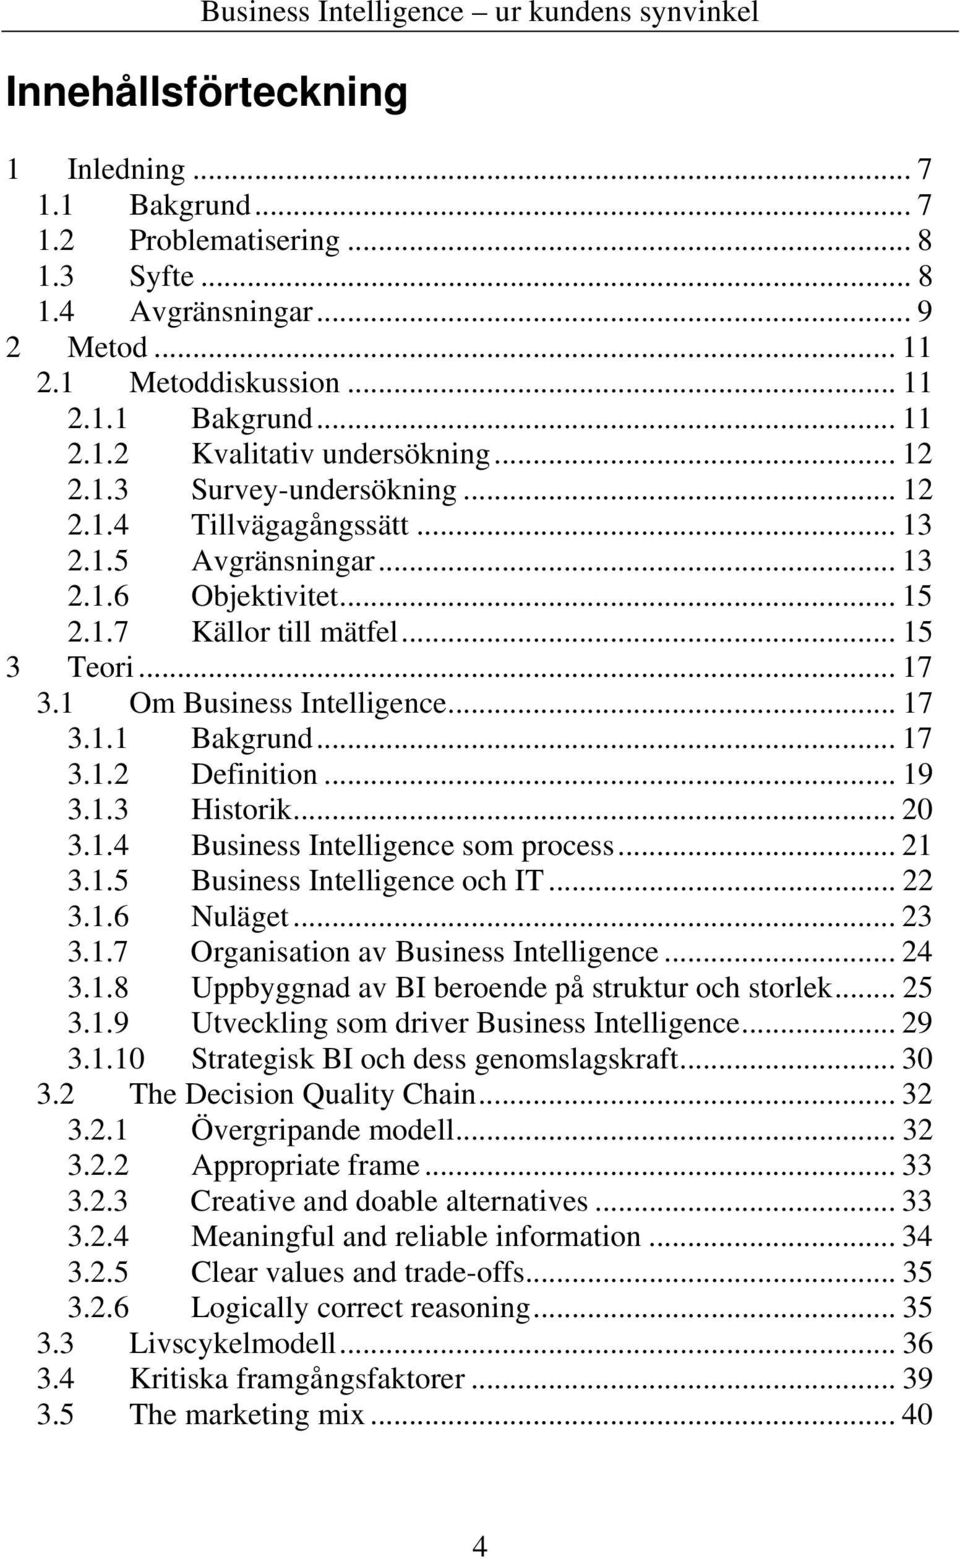 .. 17 3.1.2 Definition... 19 3.1.3 Historik... 20 3.1.4 Business Intelligence som process... 21 3.1.5 Business Intelligence och IT... 22 3.1.6 Nuläget... 23 3.1.7 Organisation av Business Intelligence.